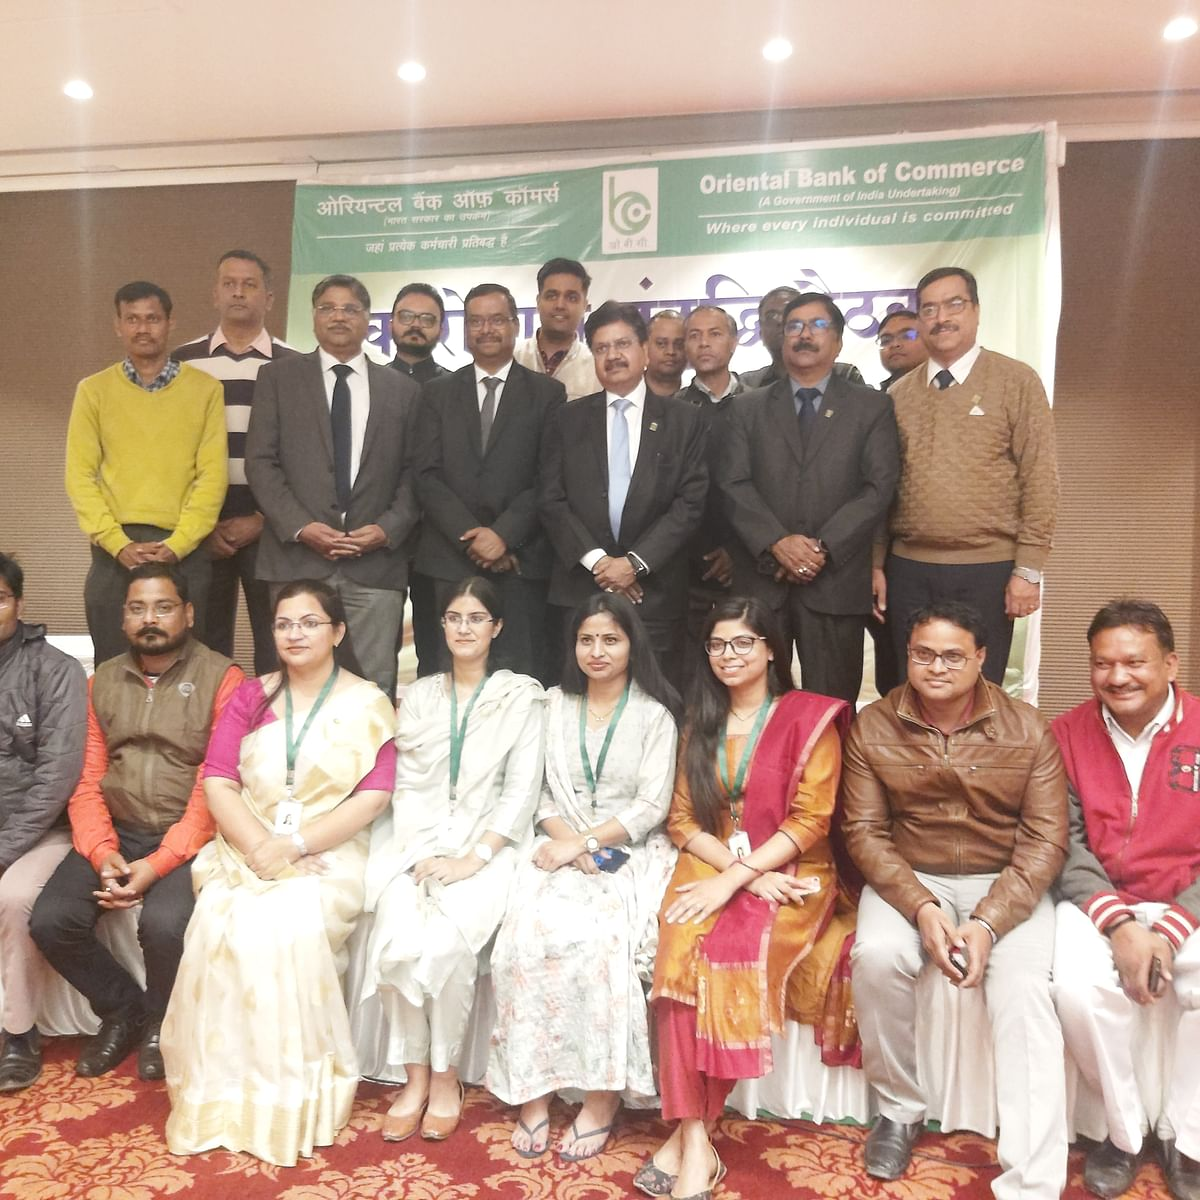 Indore: Oriental Bank Of Commerce employees get emotional over their bank's merger